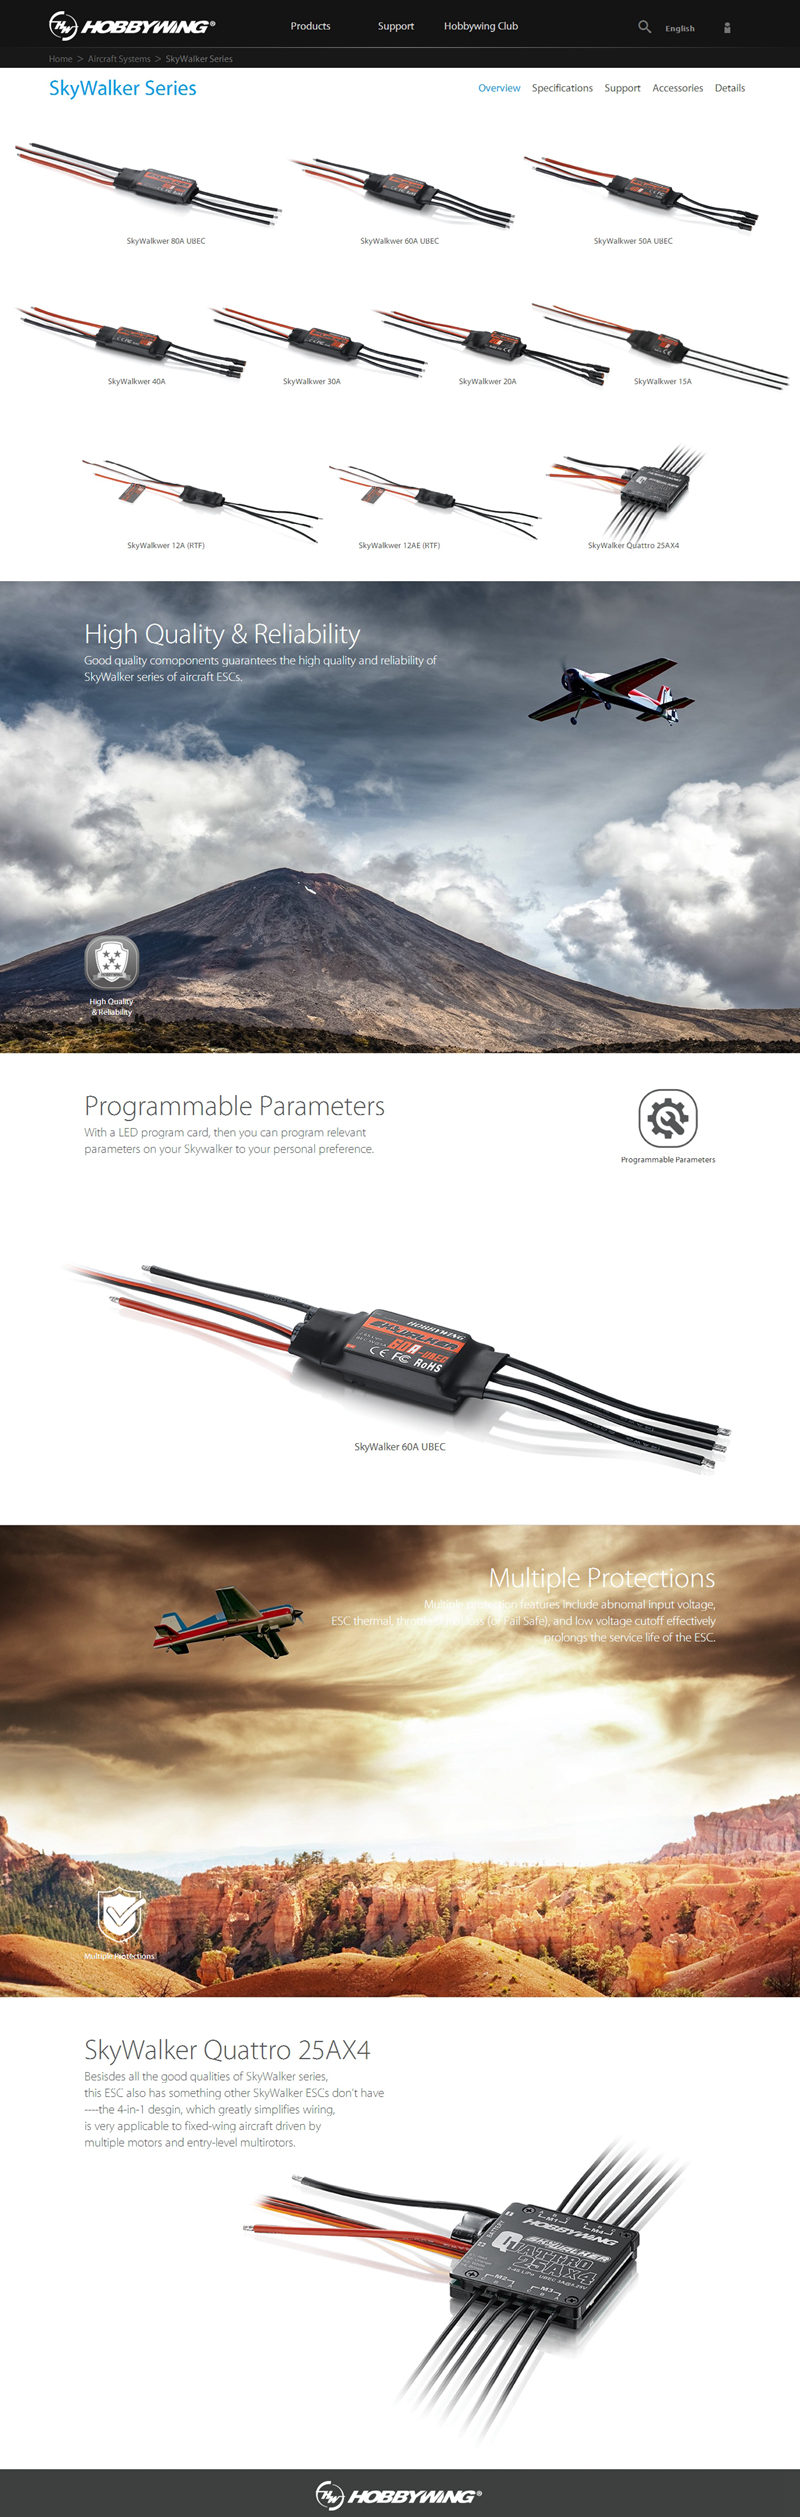 SkyWalker Series_Aircraft Systems_HOBBYWING   Welc_